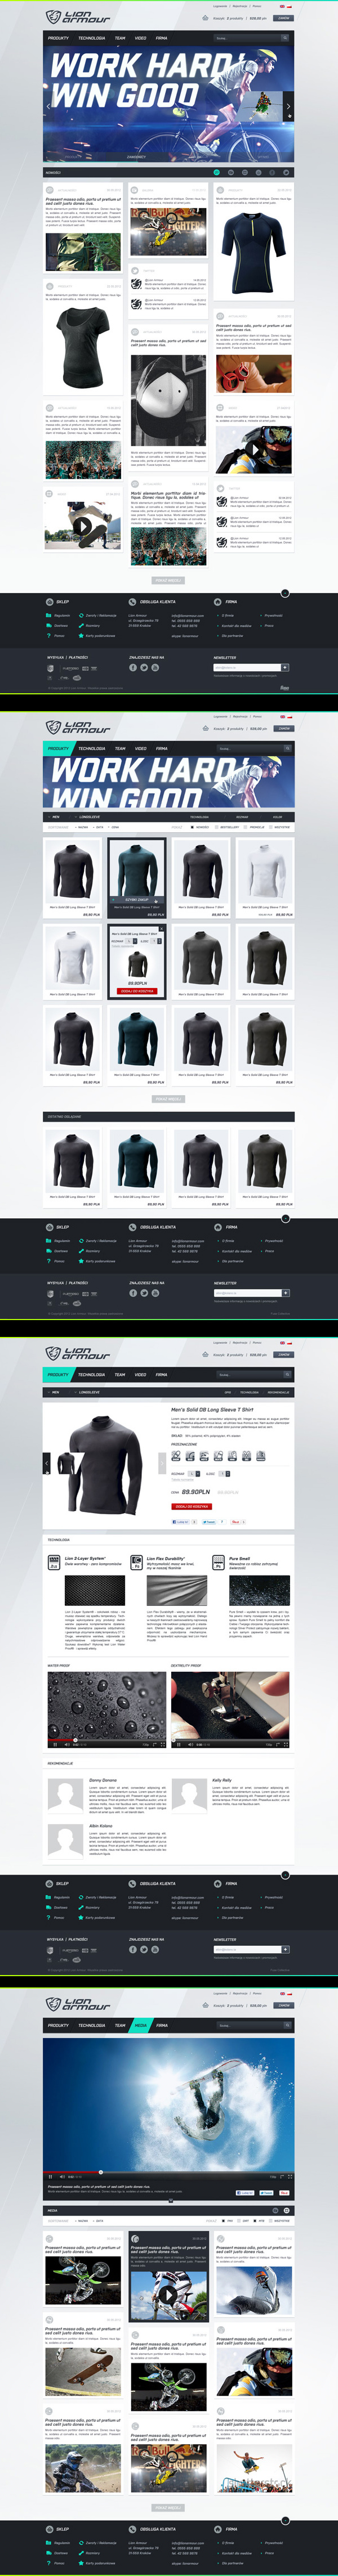 Lion Armour Branding by Fusecollective (4)